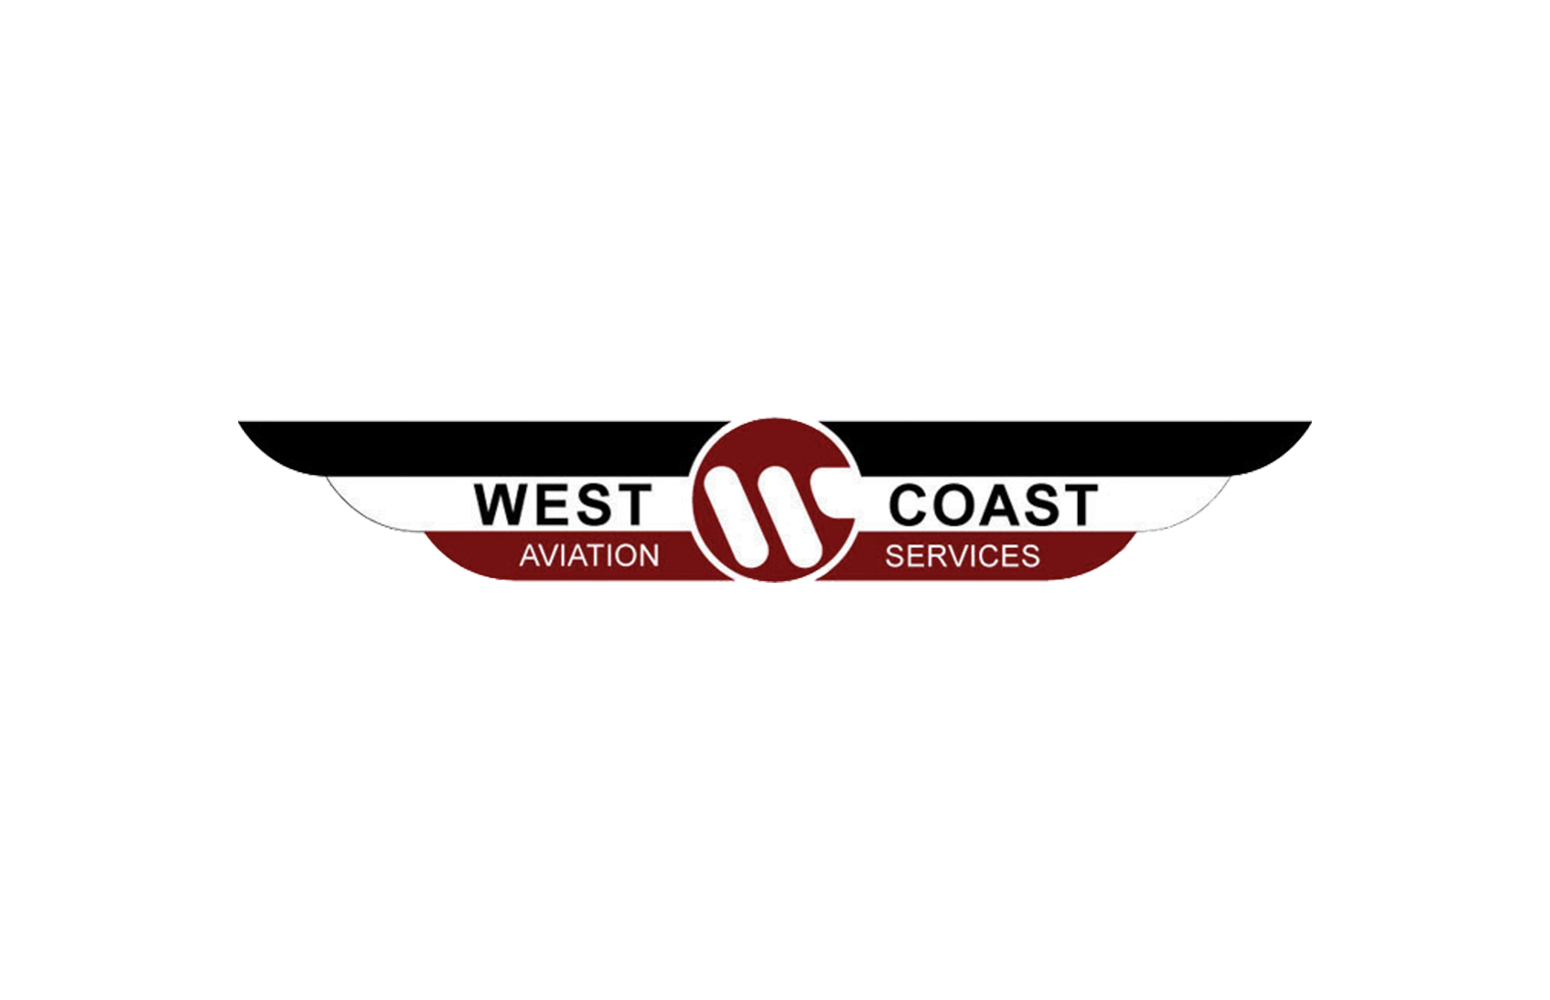 West Coast Aviation Services